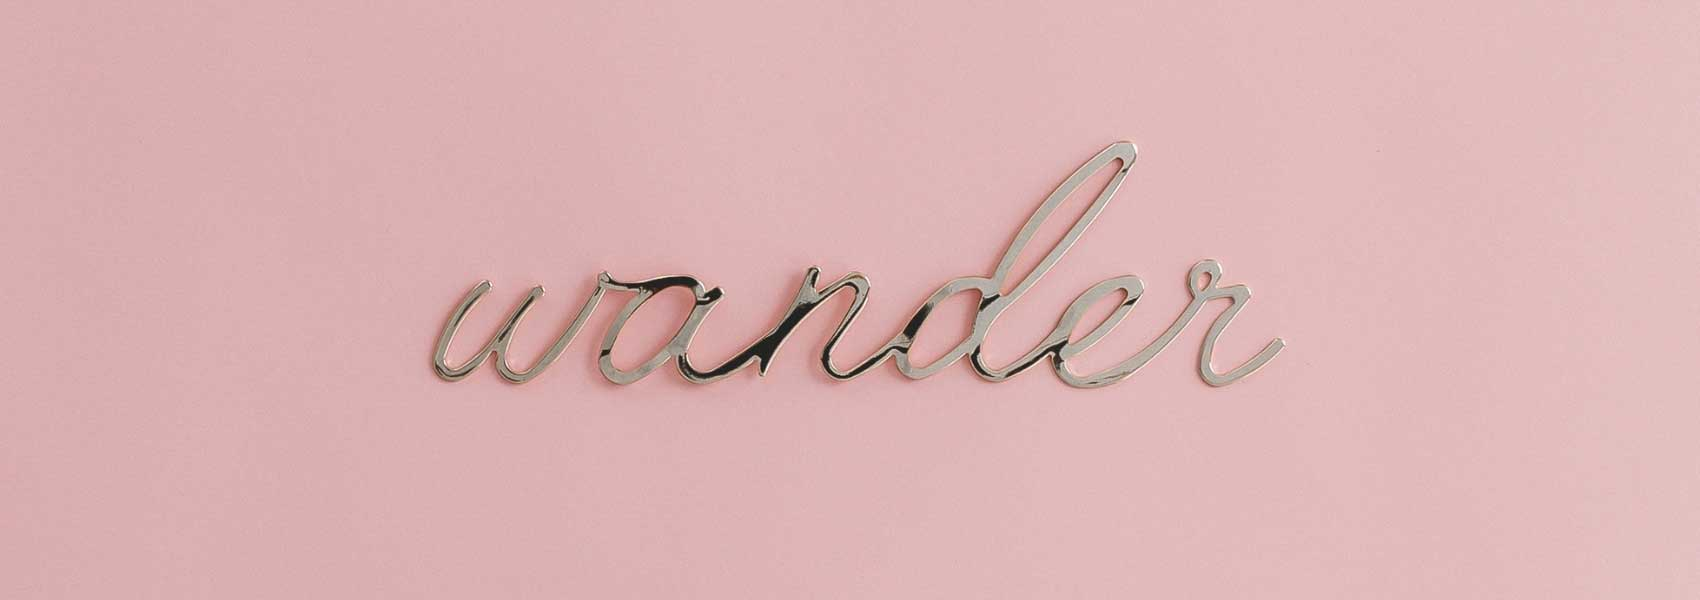 """Pink background with a shiny silver metal sign that says """"wander."""""""